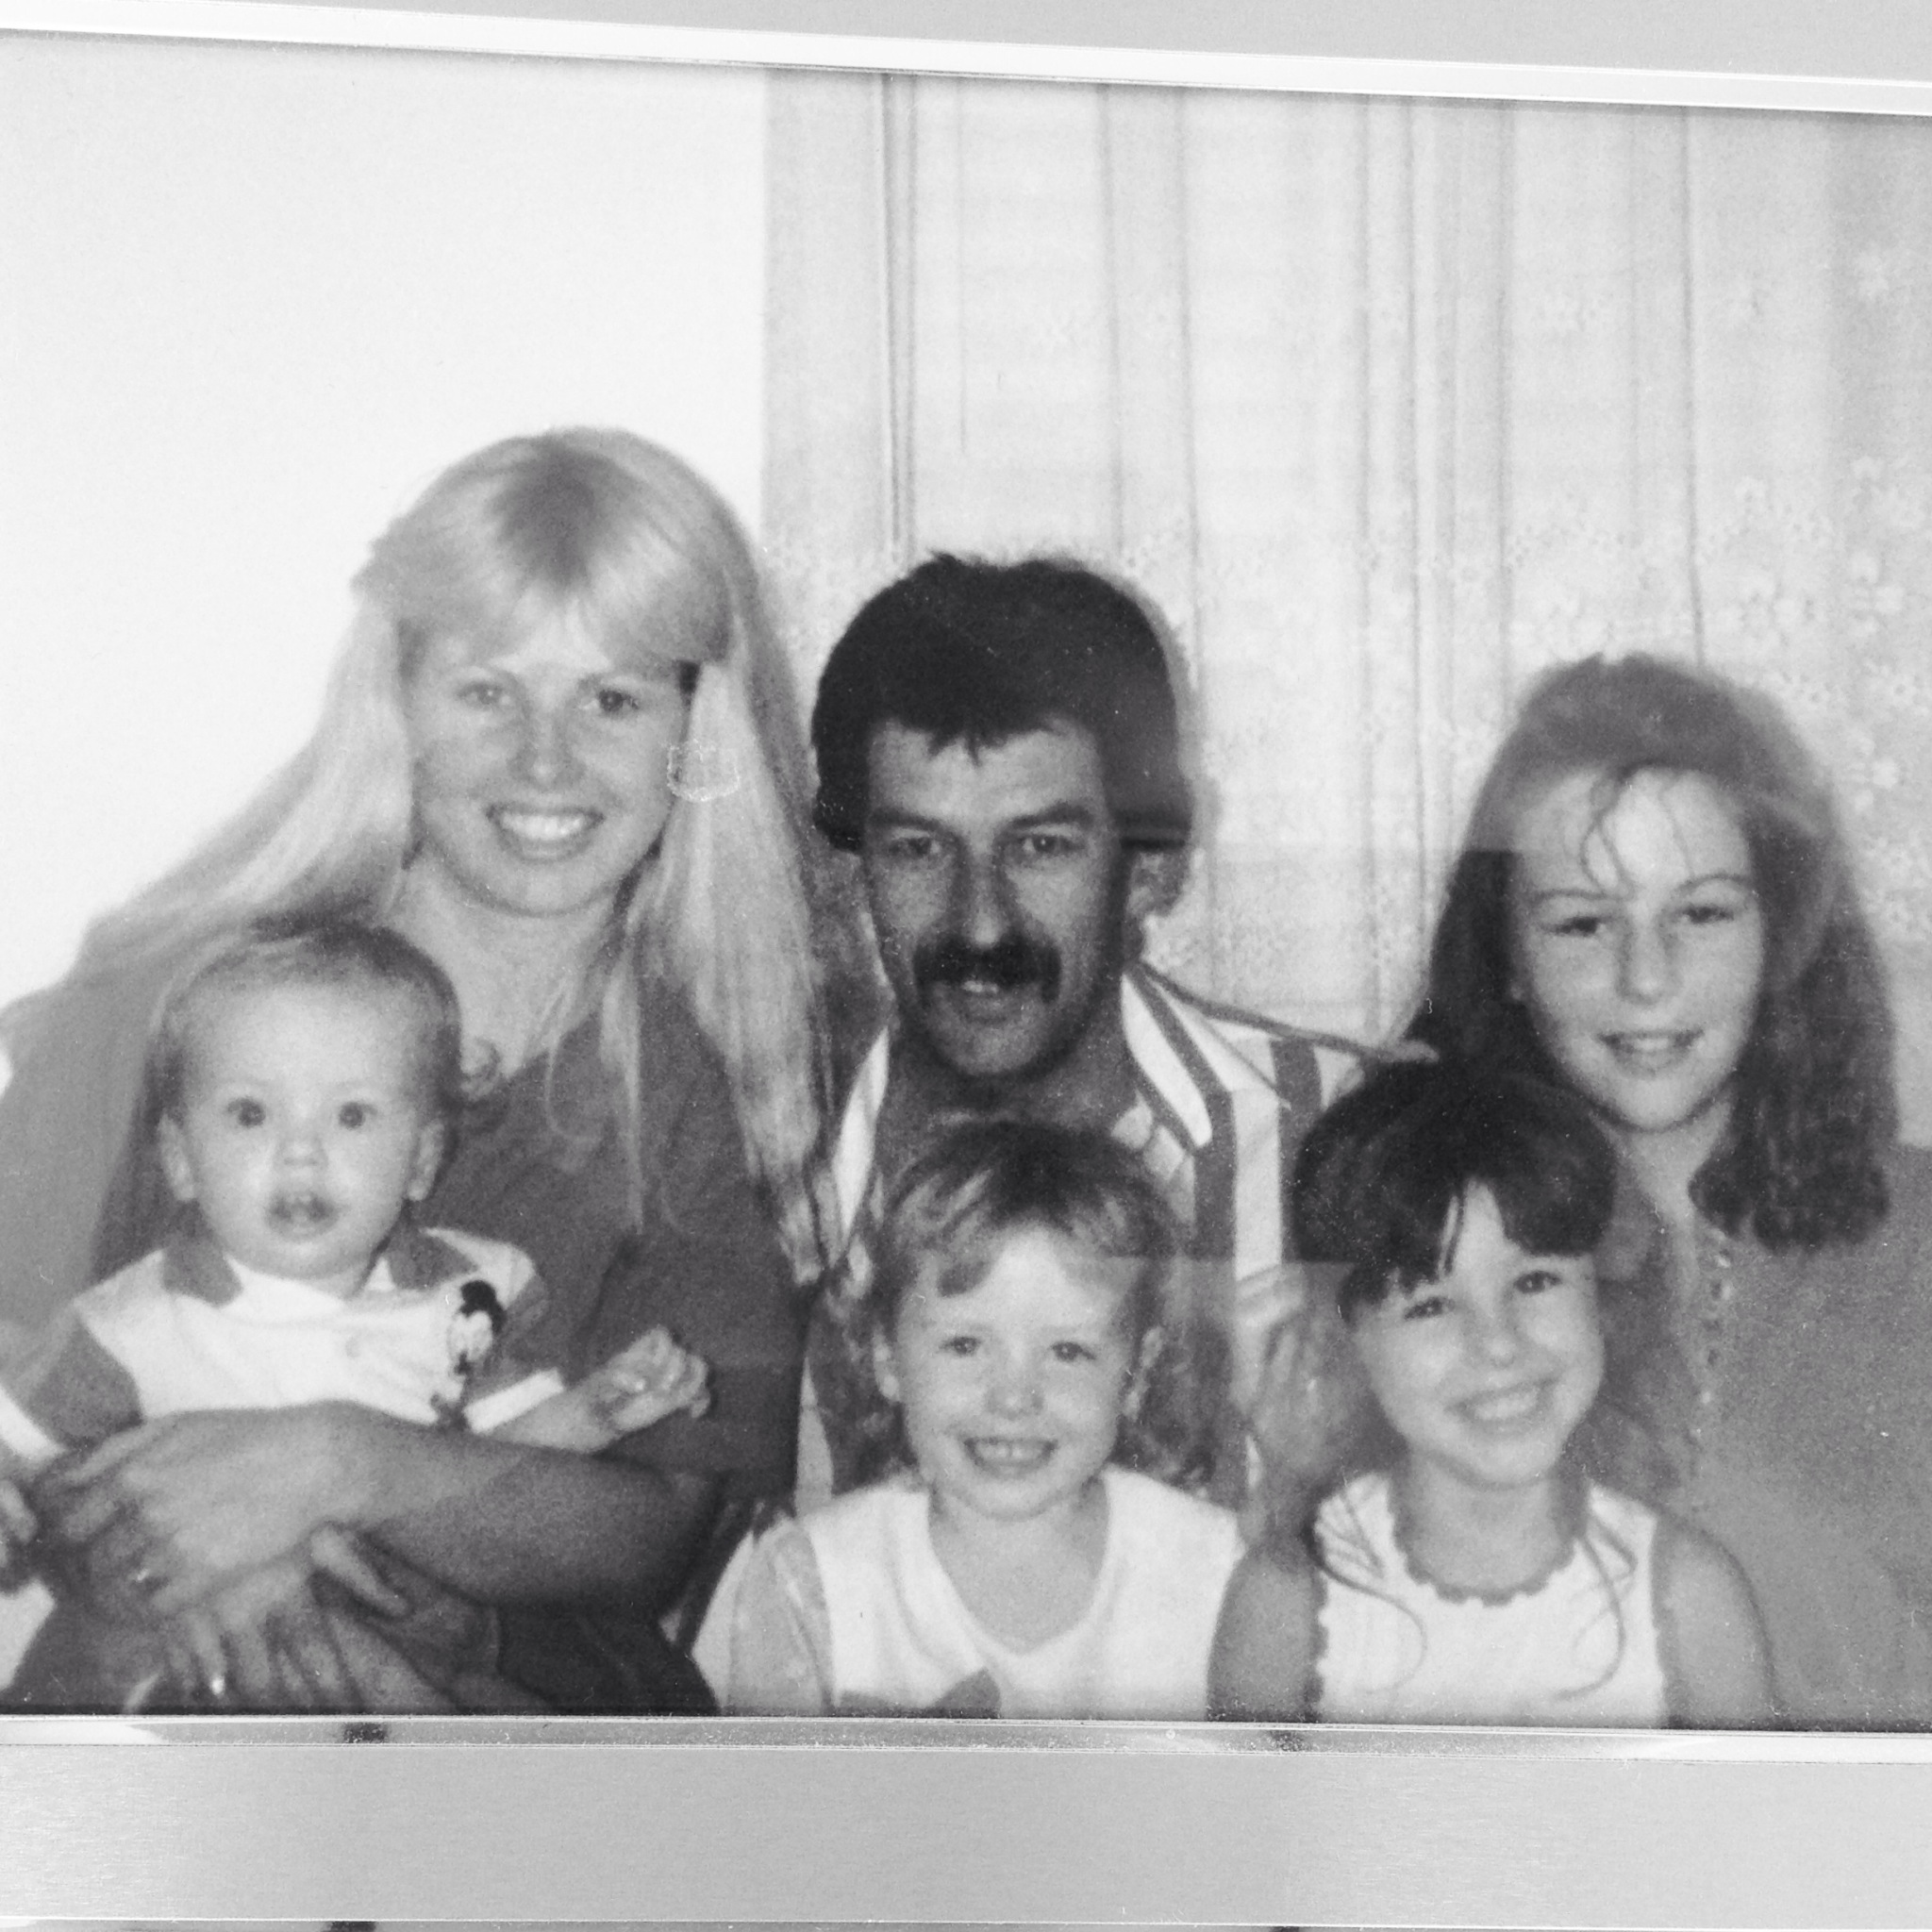 A family photo from the eighties Melbourne